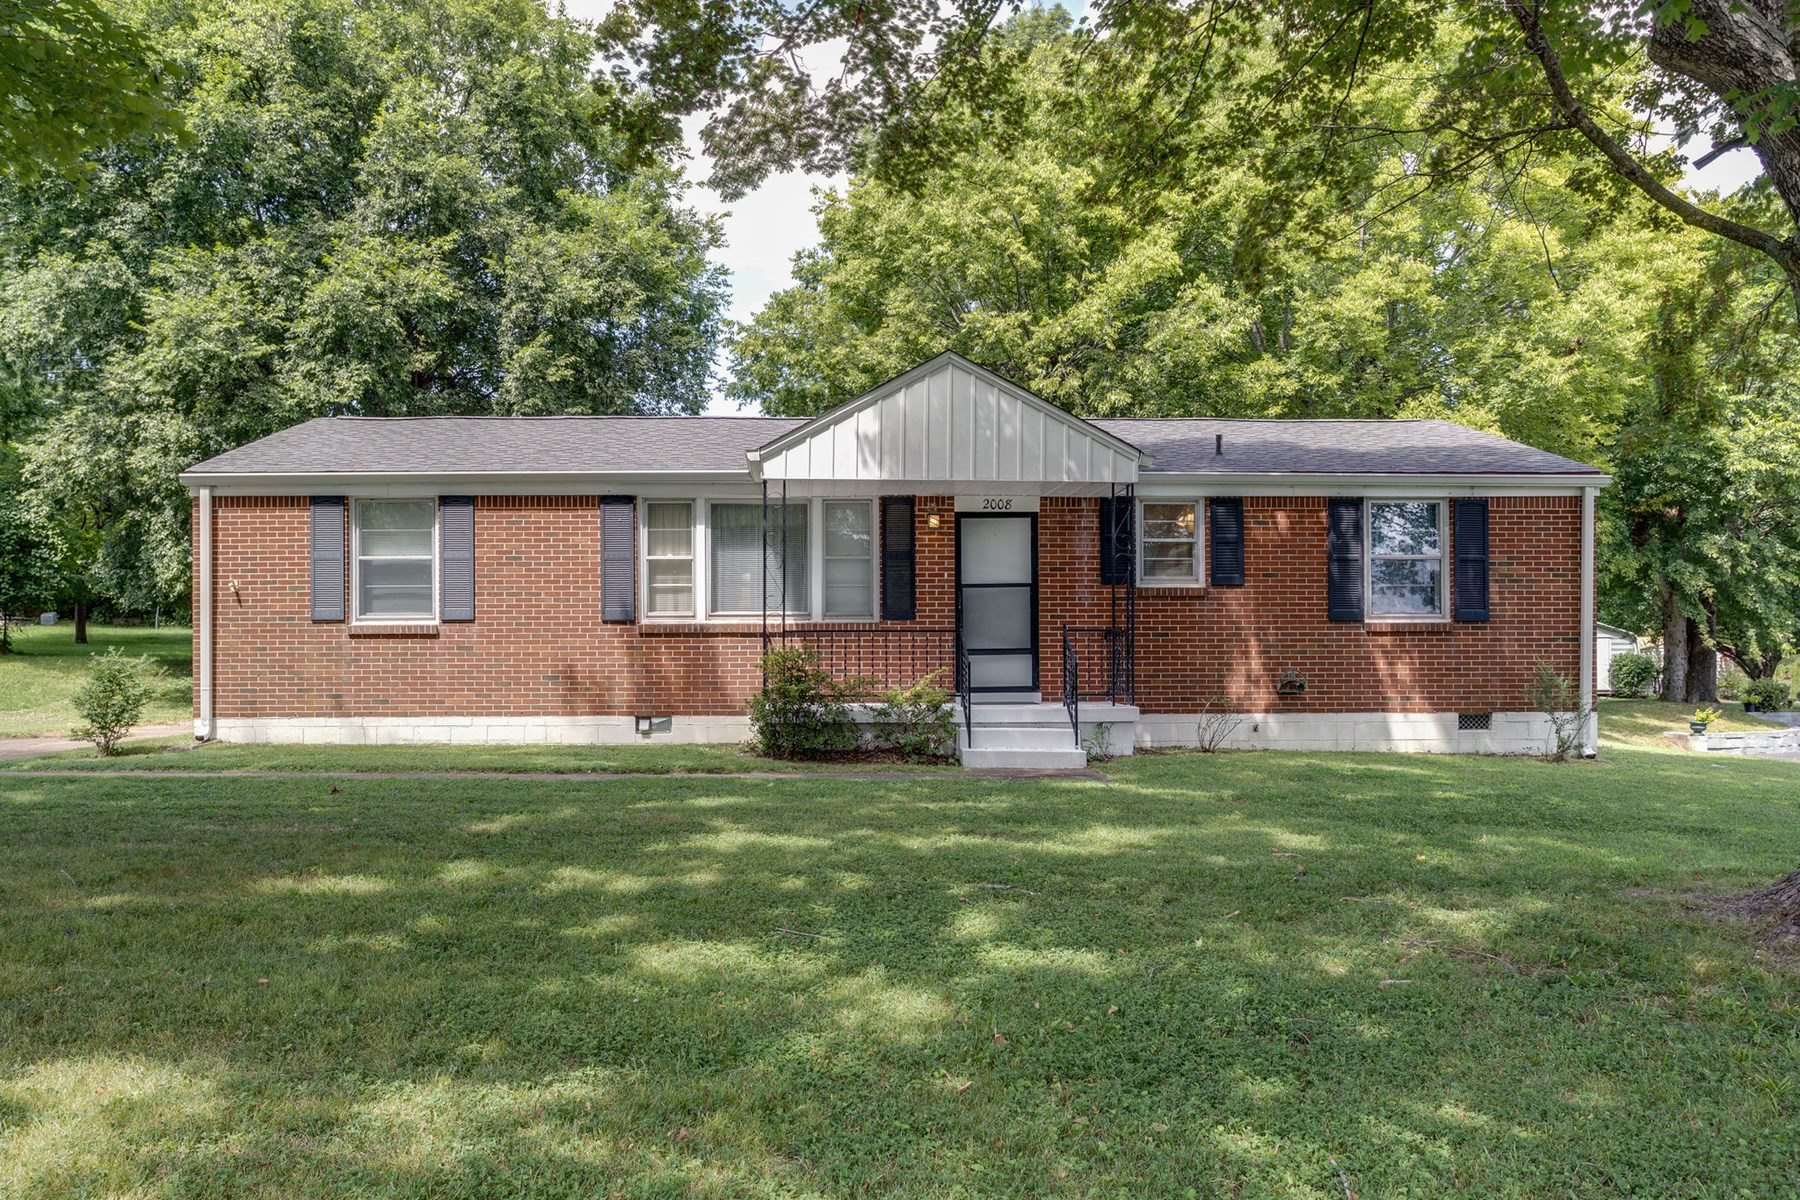 All Brick 3 Bedroom Home for Sale, in Columbia, Tennessee